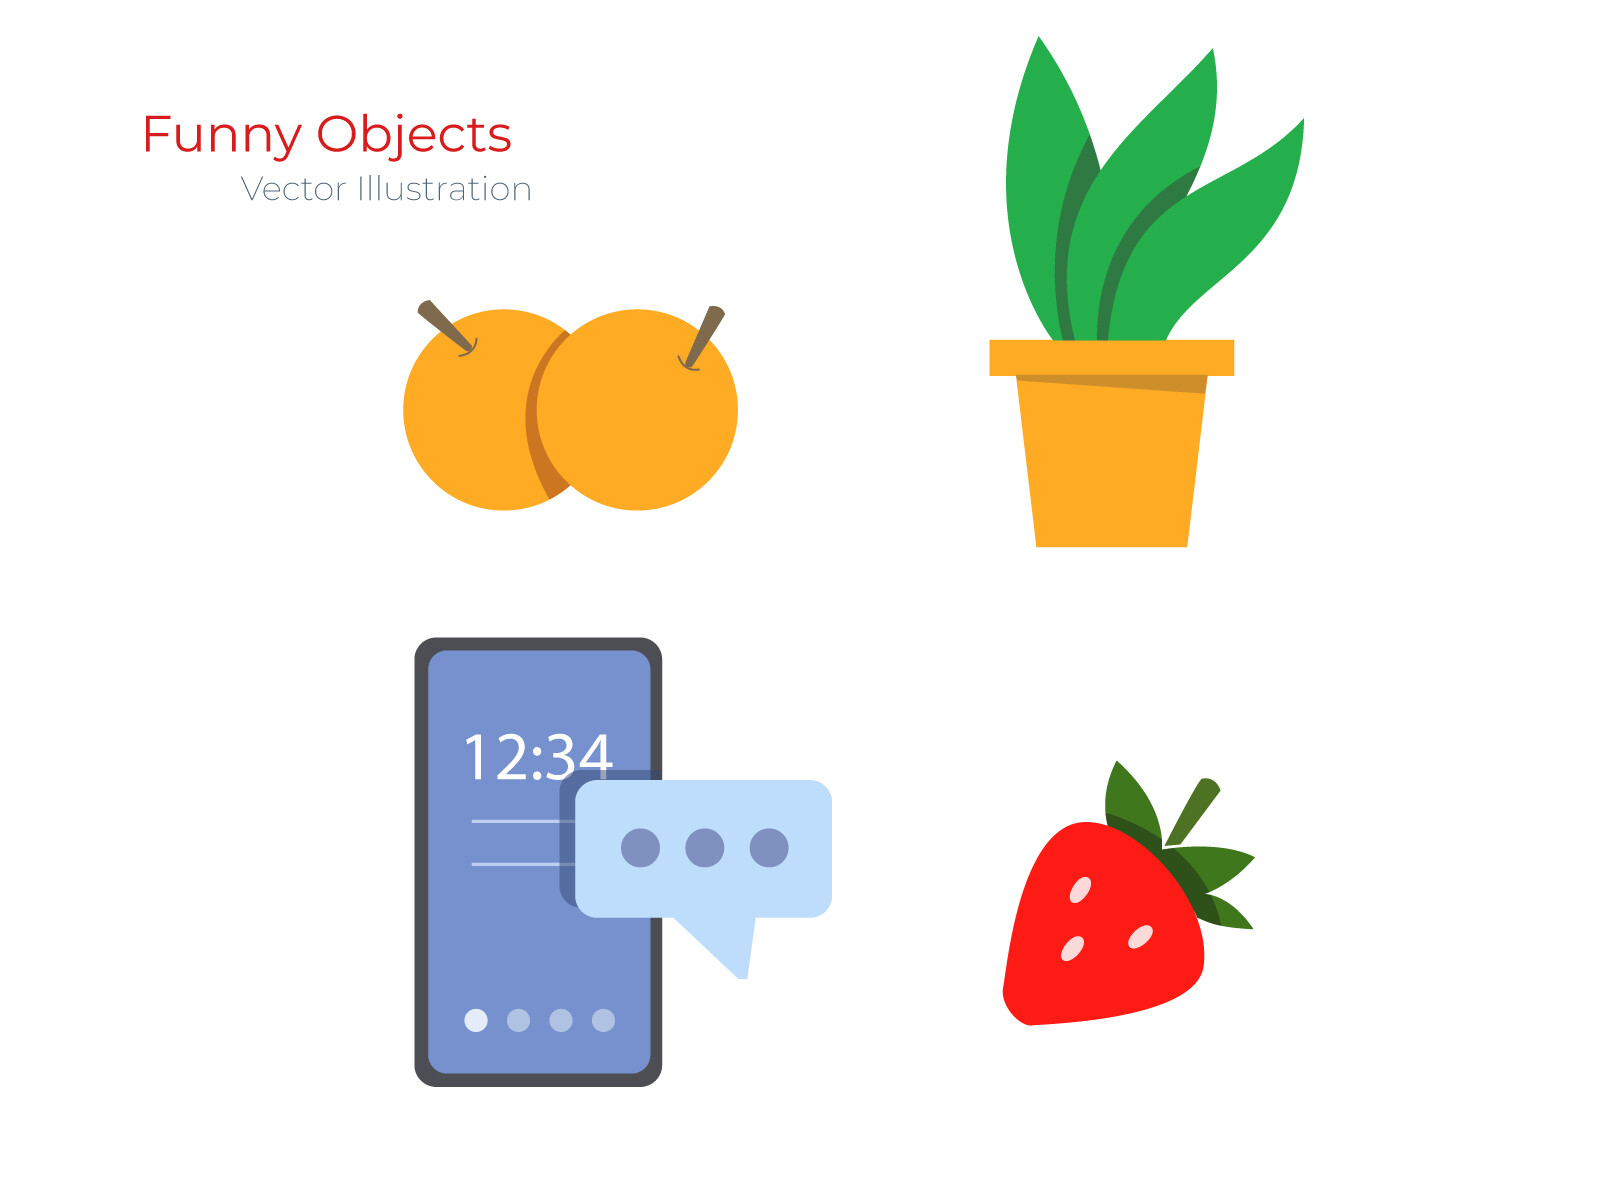 Funny Objects